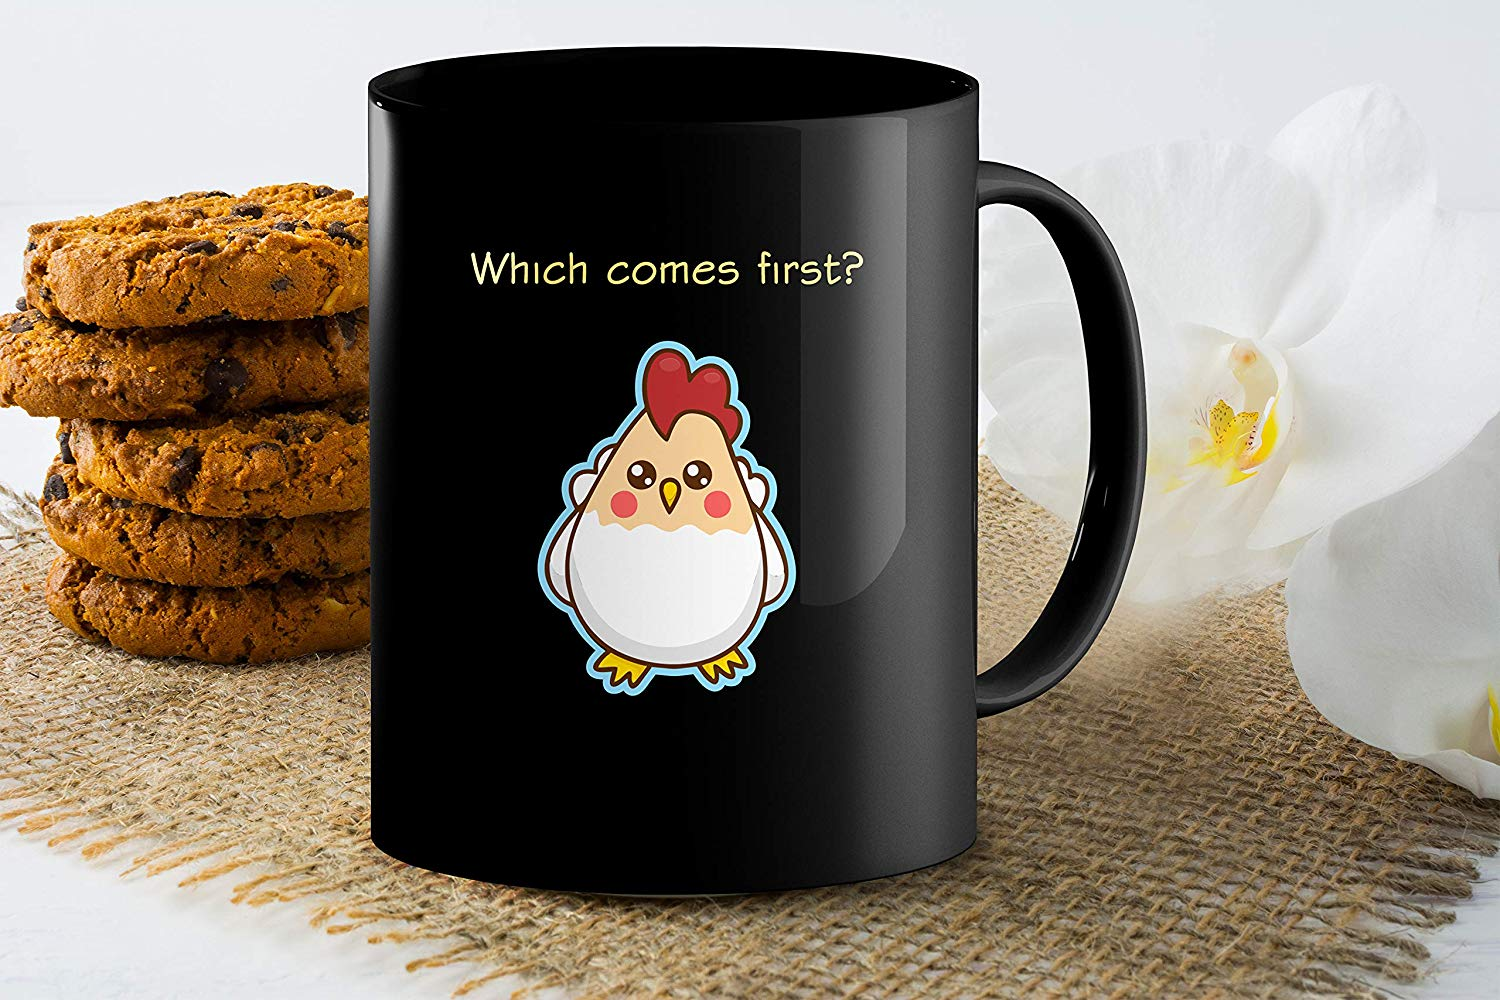 Heat Sensitive Color Changing Coffee Mug Funny Coffee Cup Which Comes First The Chicken Or The Egg Funny Gift Idea B07D1ZSXDJ 9